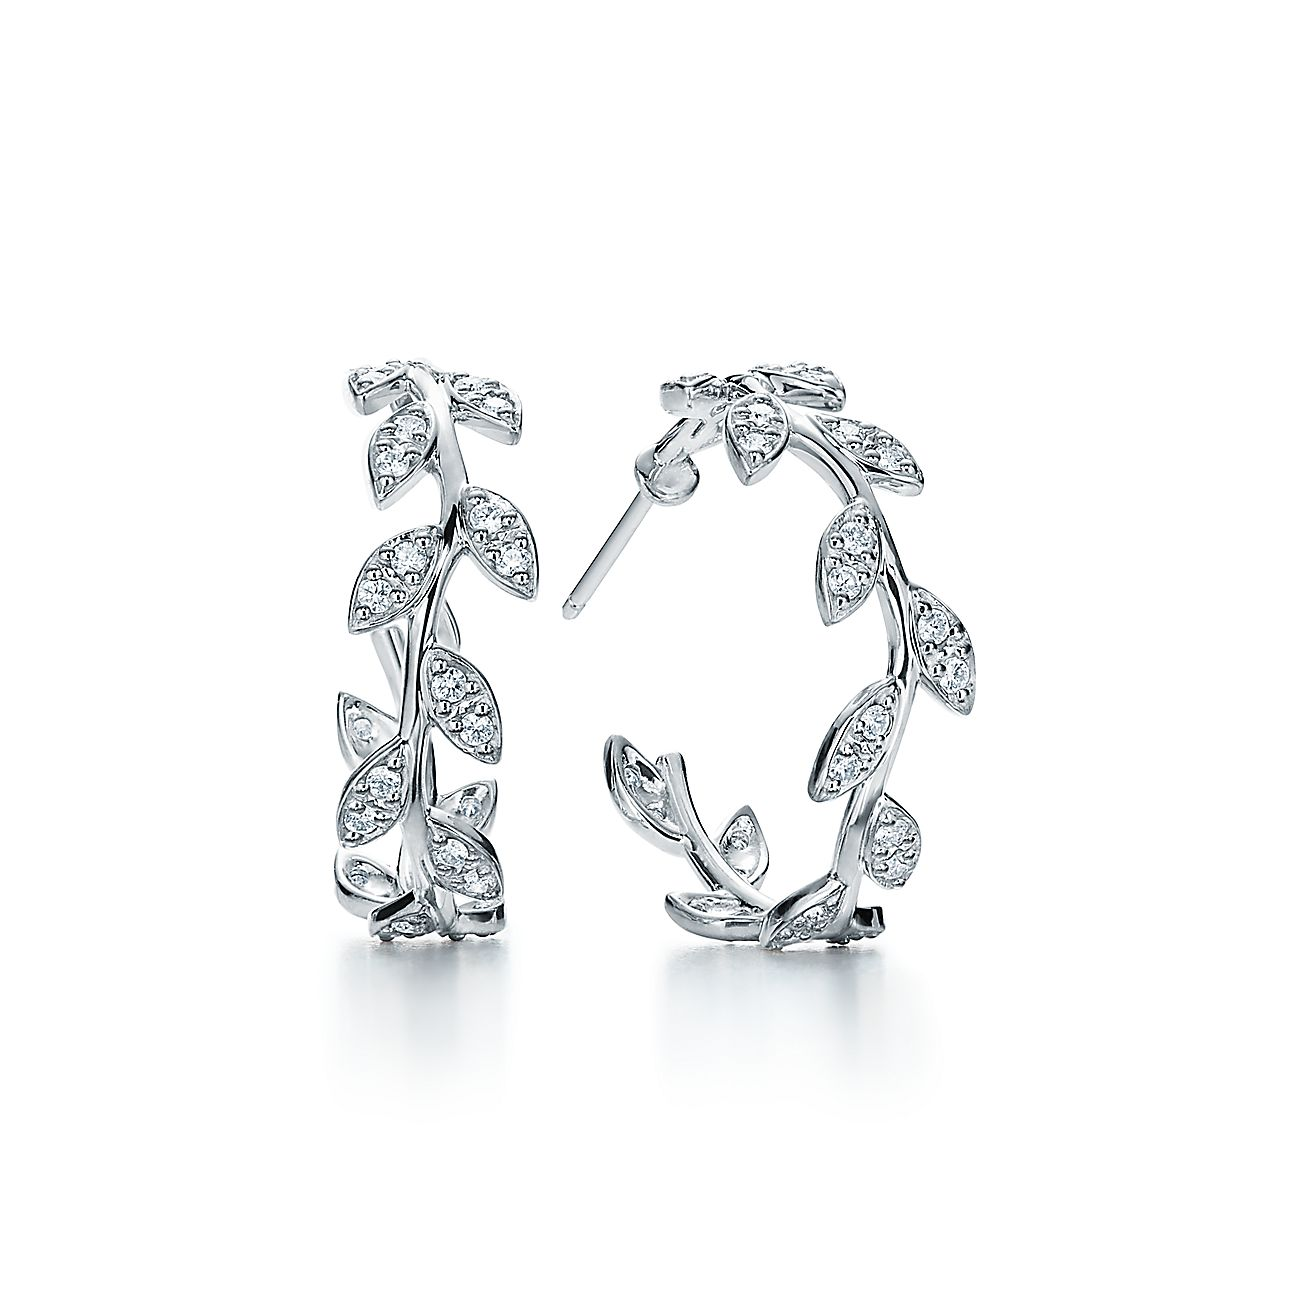 Paloma Pico Olive Leaf Hoop Earrings In 18k White Gold With Diamonds Tiffany Co